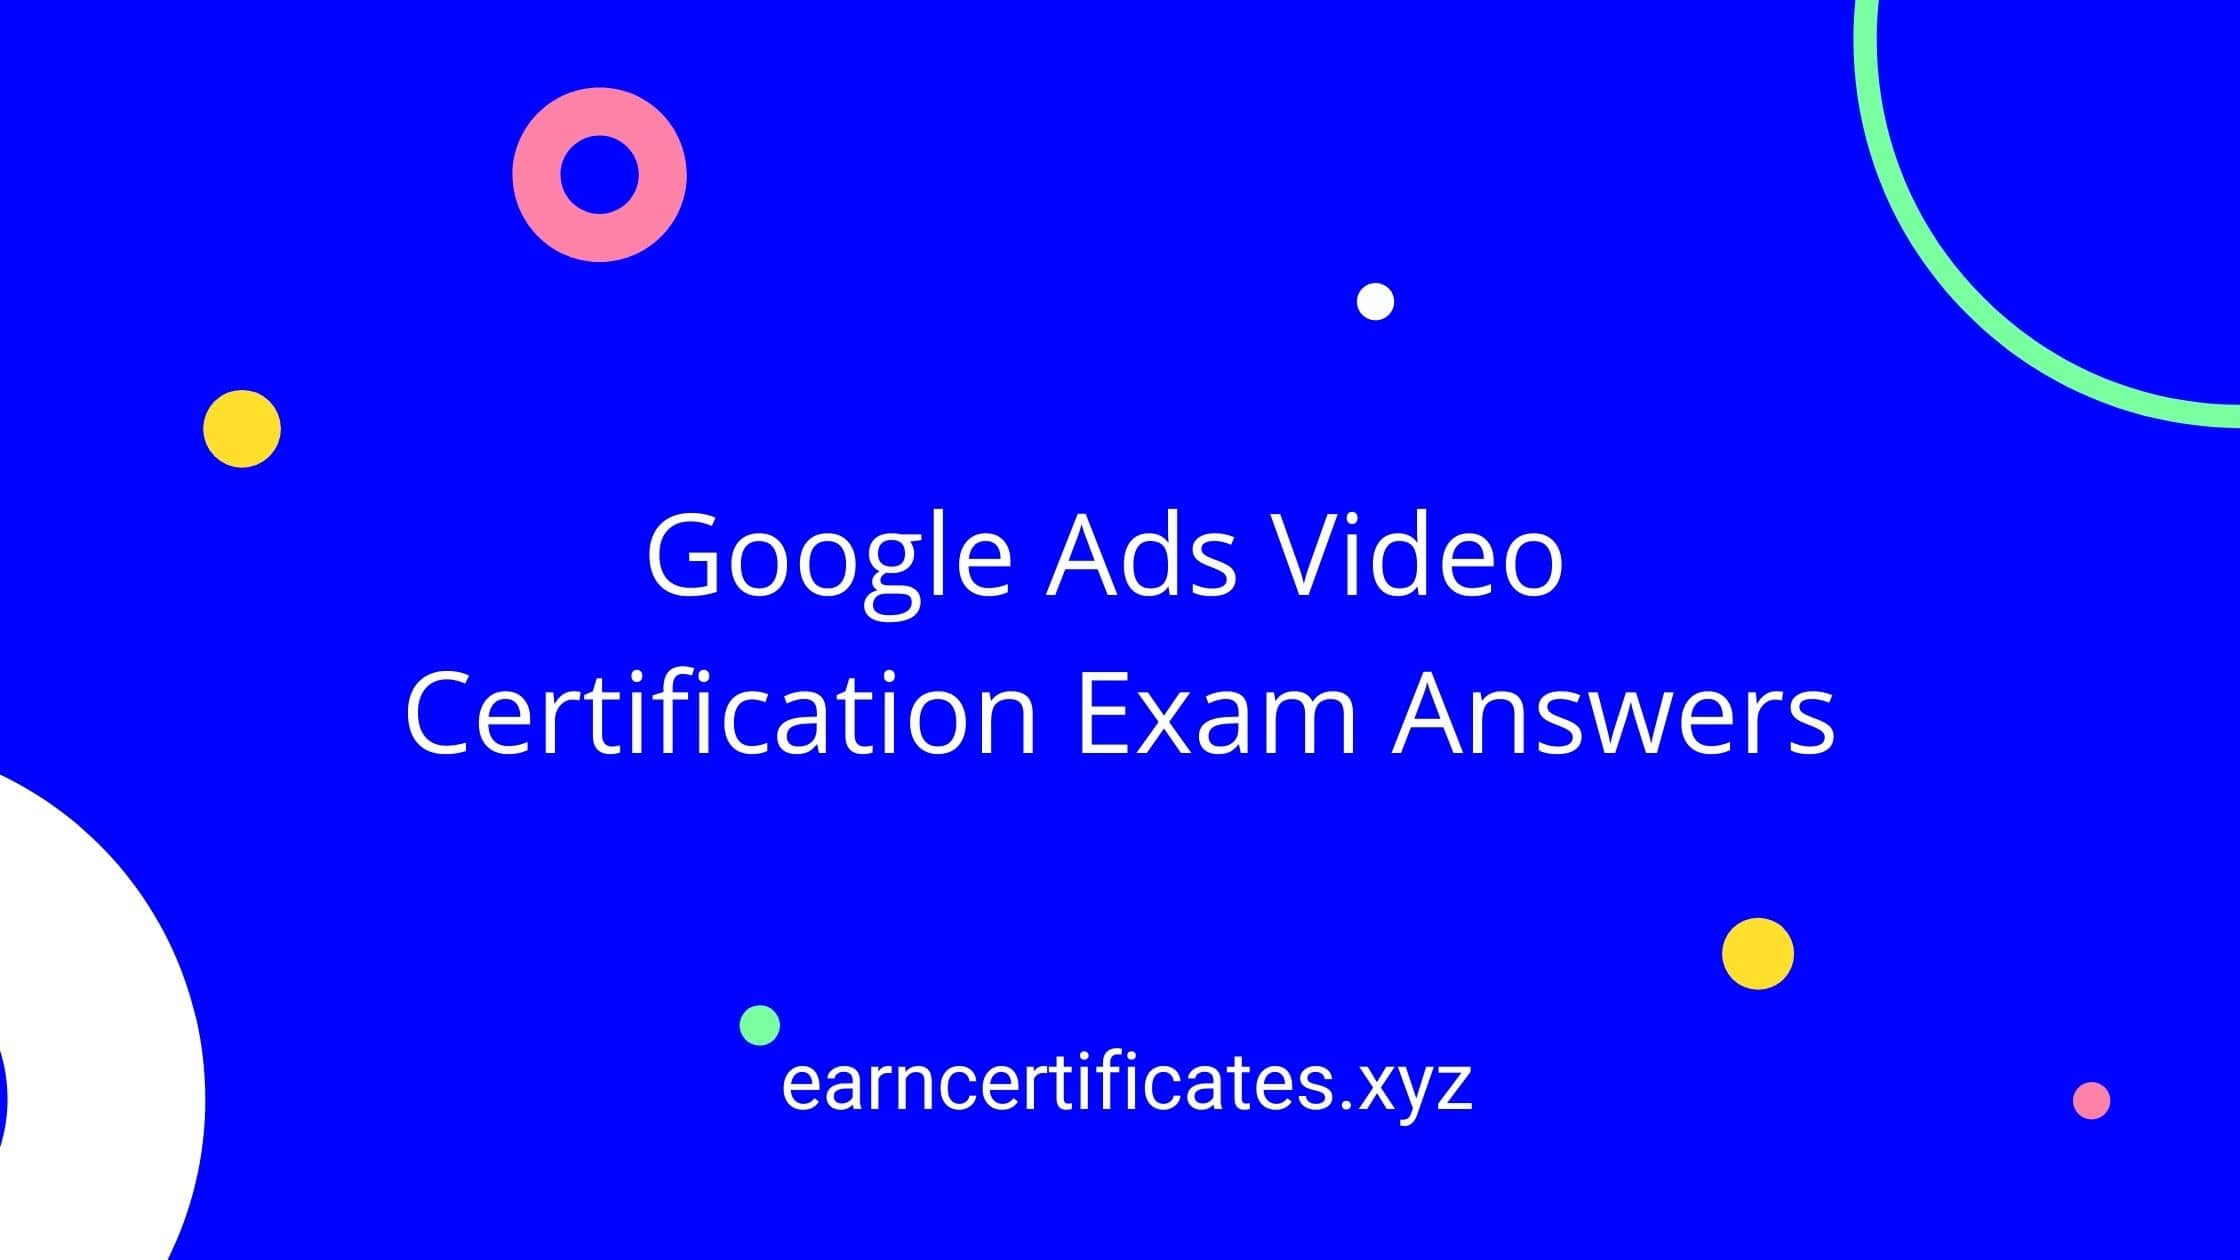 Google Ads Video Certification Exam Answers